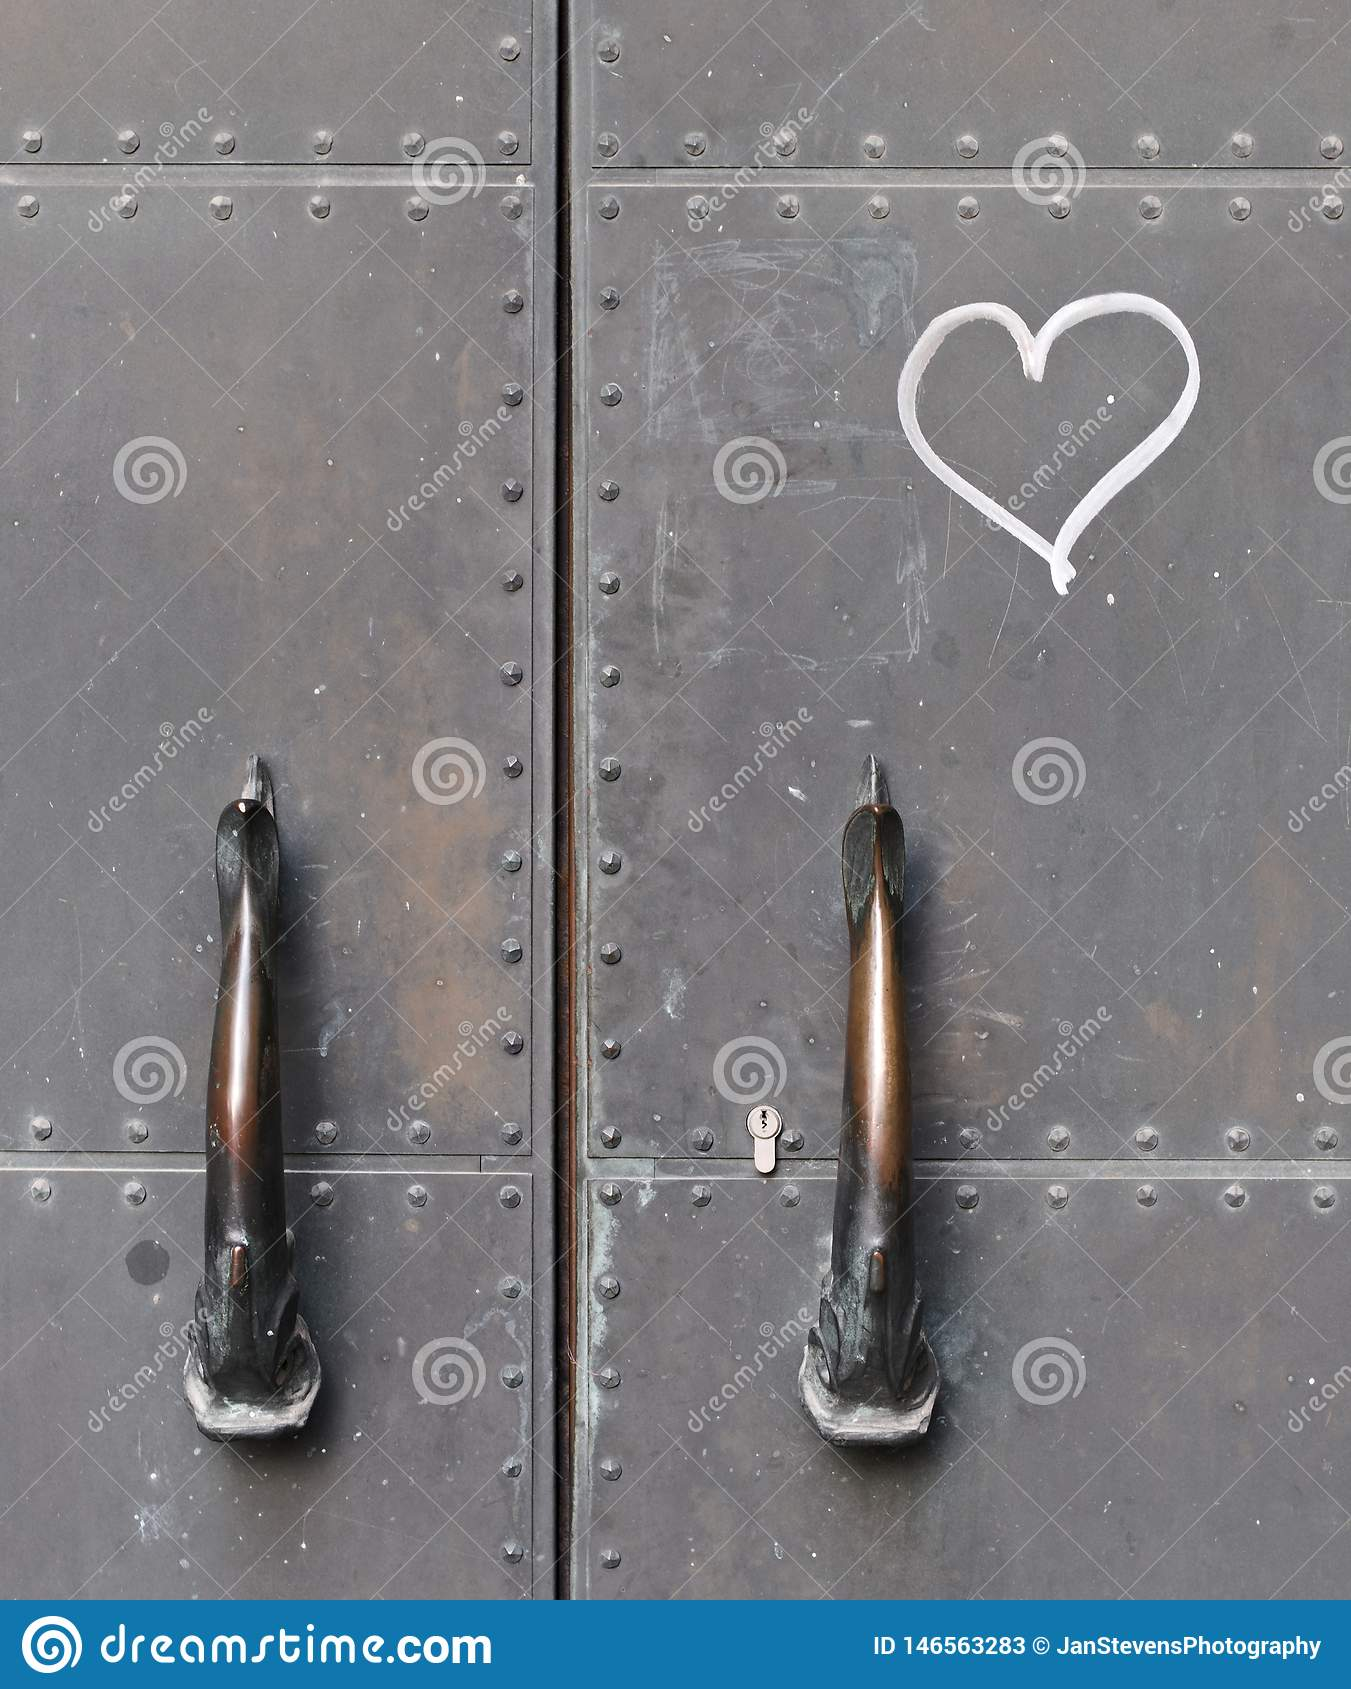 Door handles and a heart